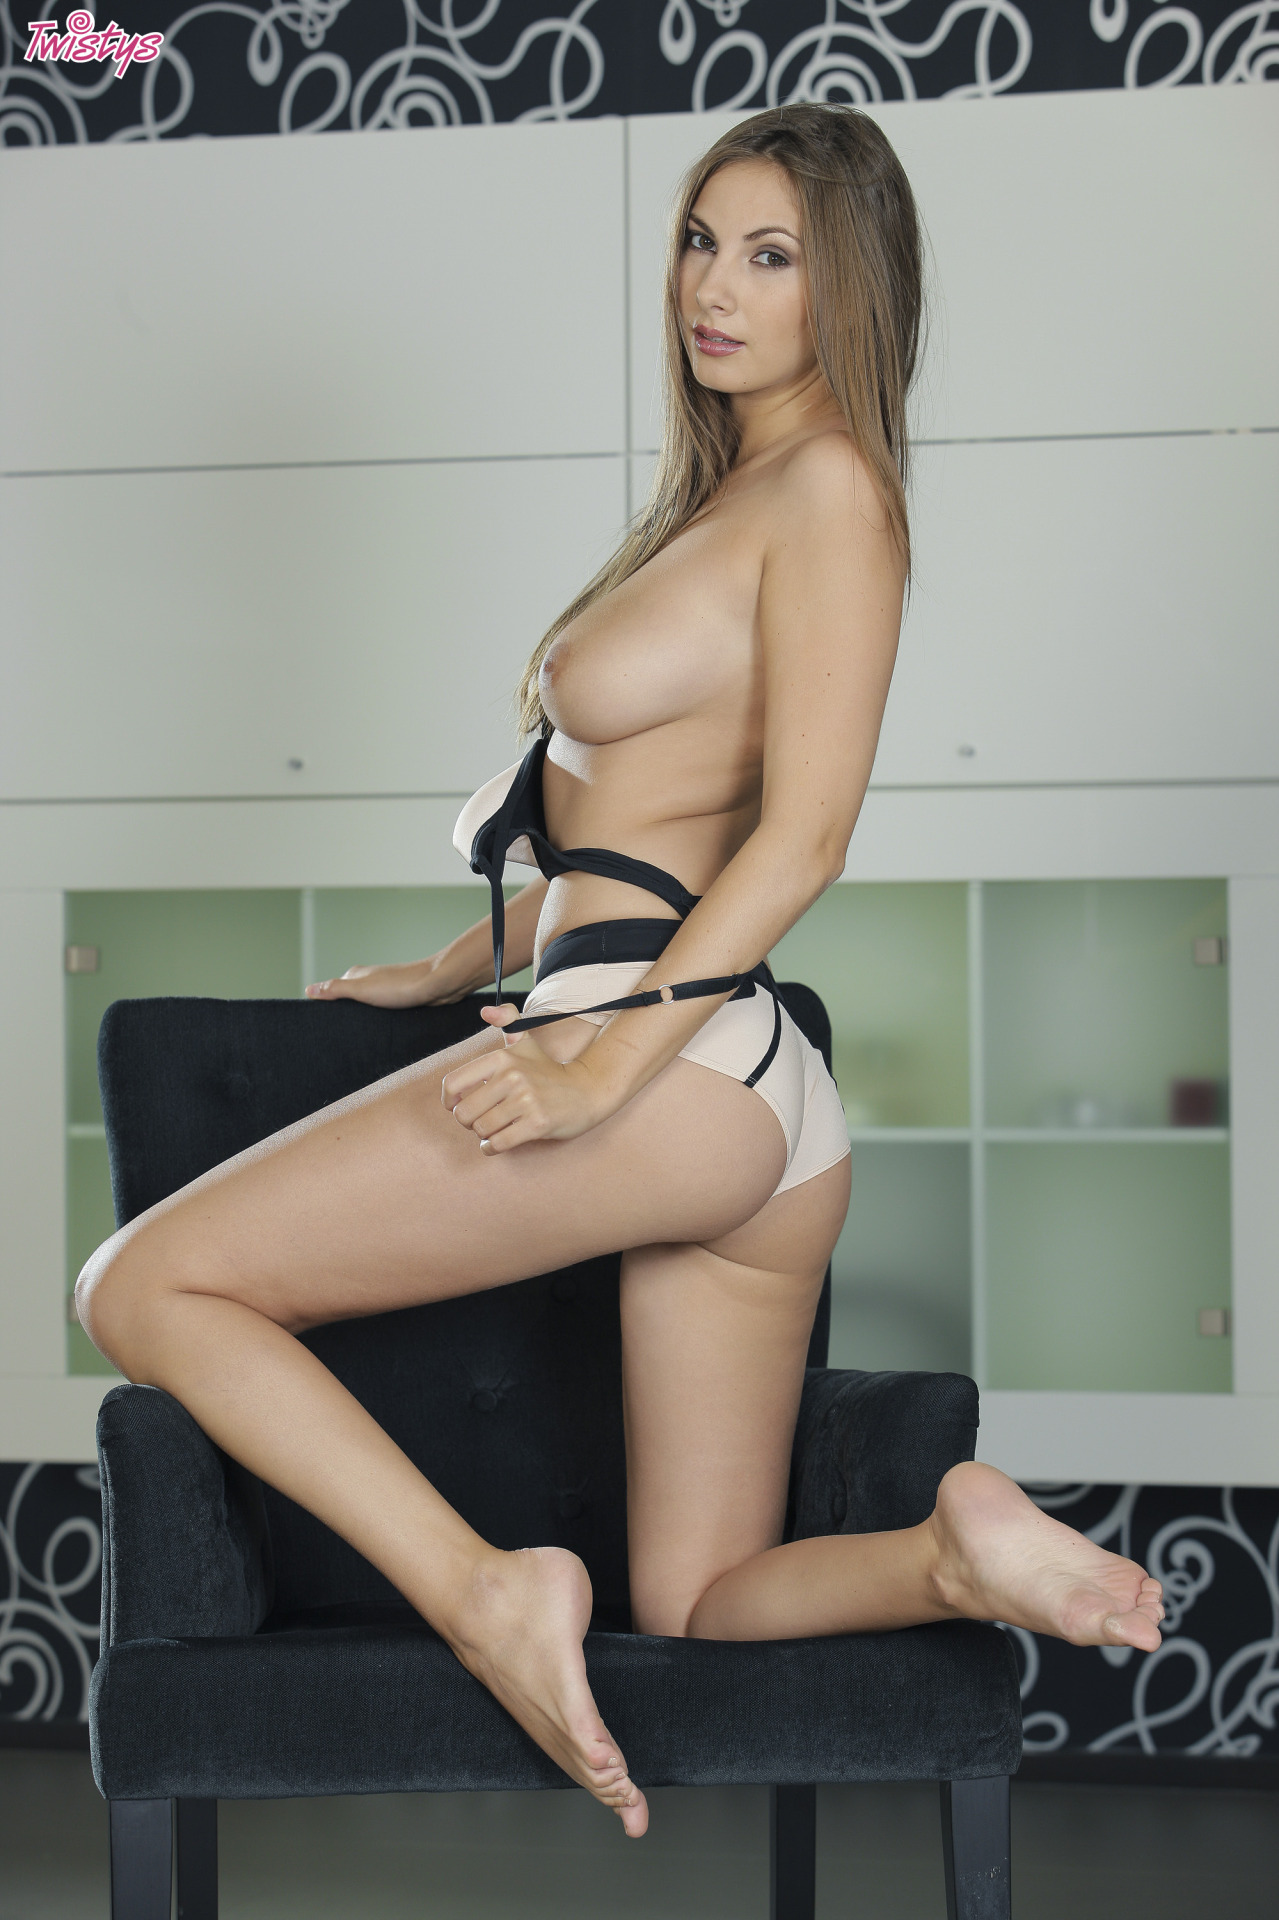 Connie Carter / Mary Grey / Conny Lior / Roselyne A / Josephine – Yet More Busty Loveliness Part 1 Of 2 6